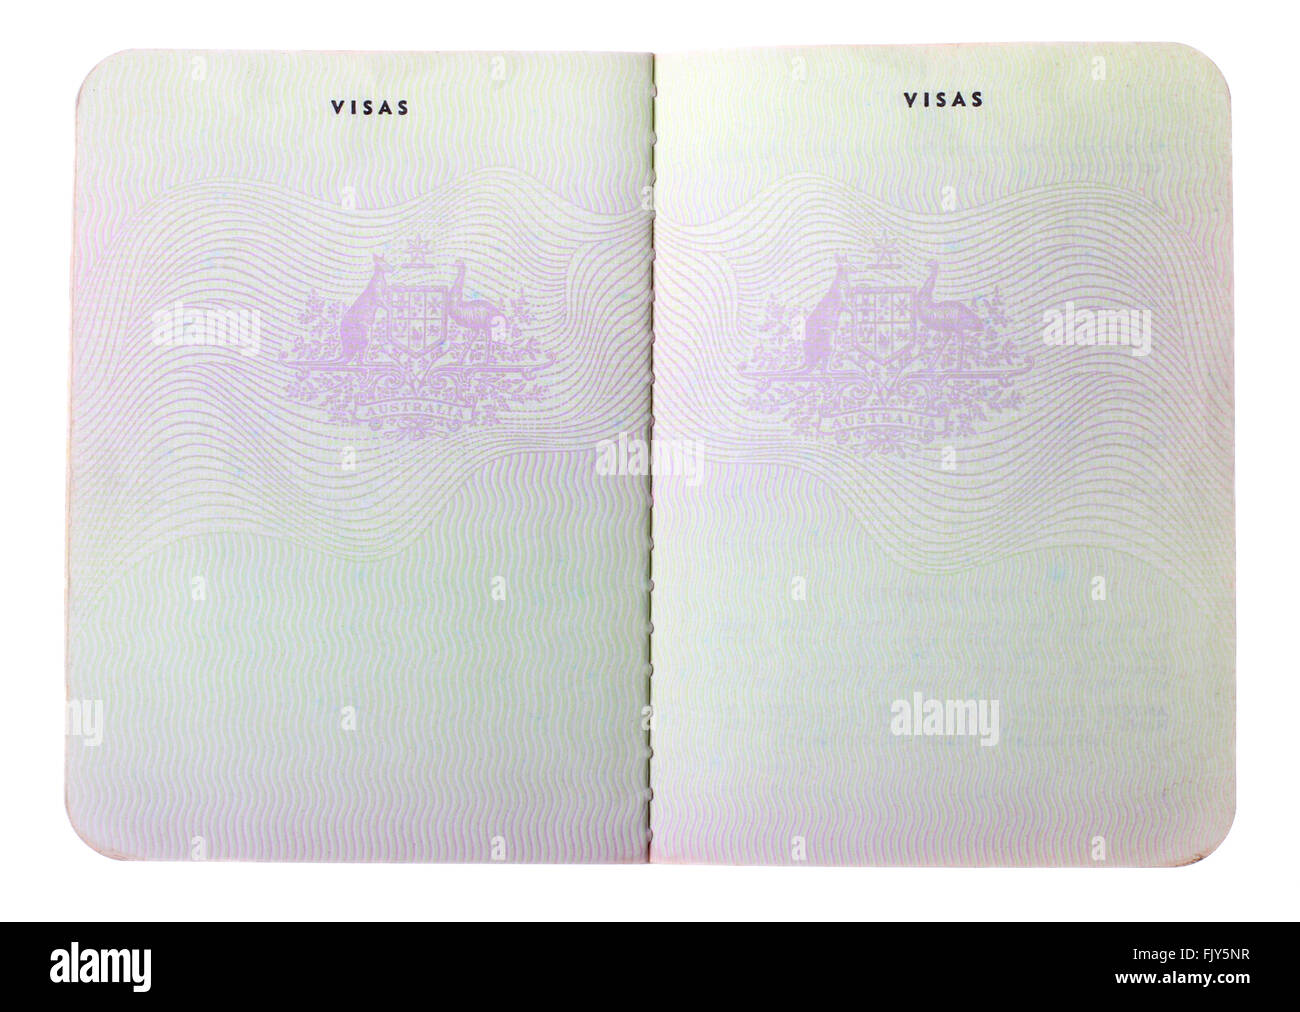 Blank old Australian passport pages isolated on white background. - Stock Image